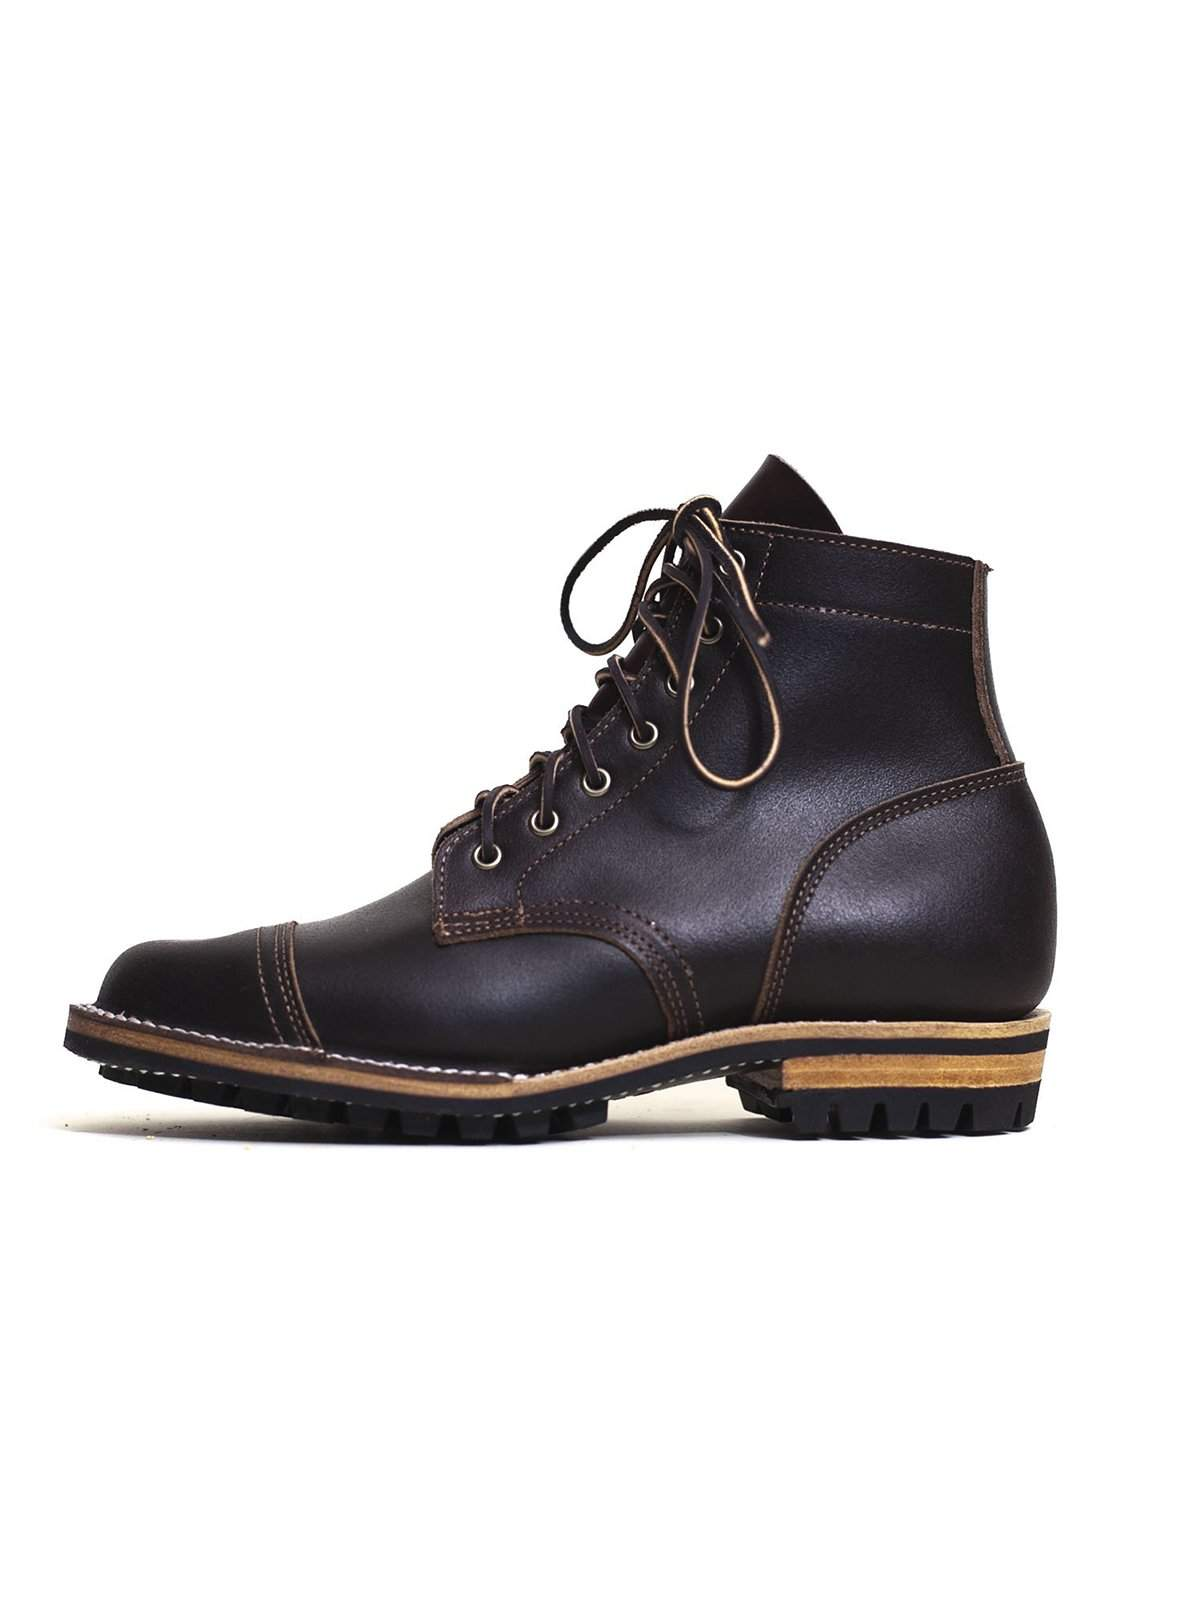 75f36c017ed Truman Boot Co. Java Waxed Flesh - MORE by Morello Indonesia